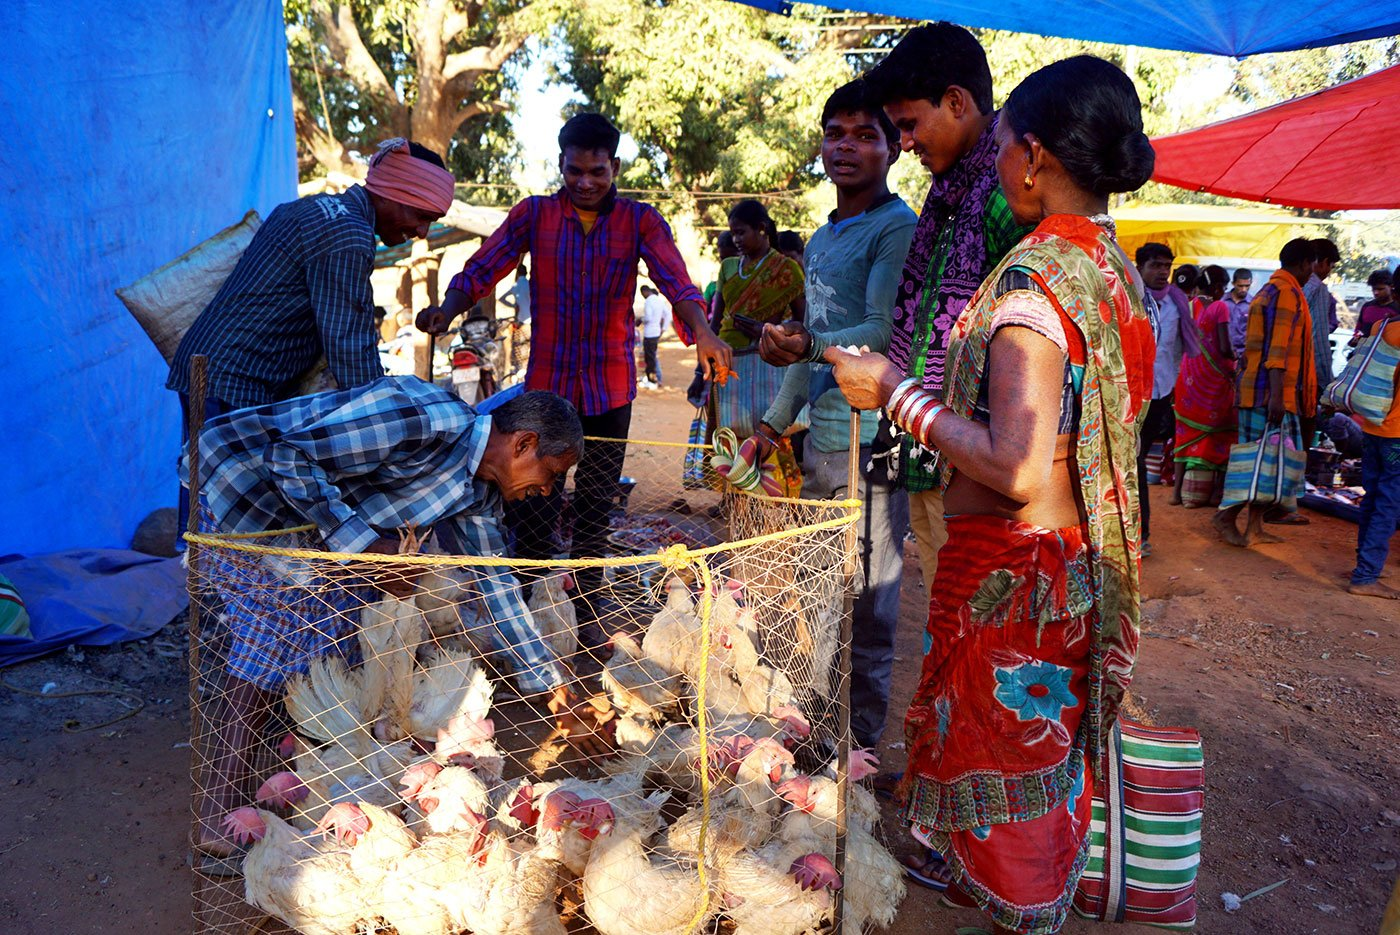 These days, broiler chicken is sold at the haat because it is cheaper than desi (country) chicken